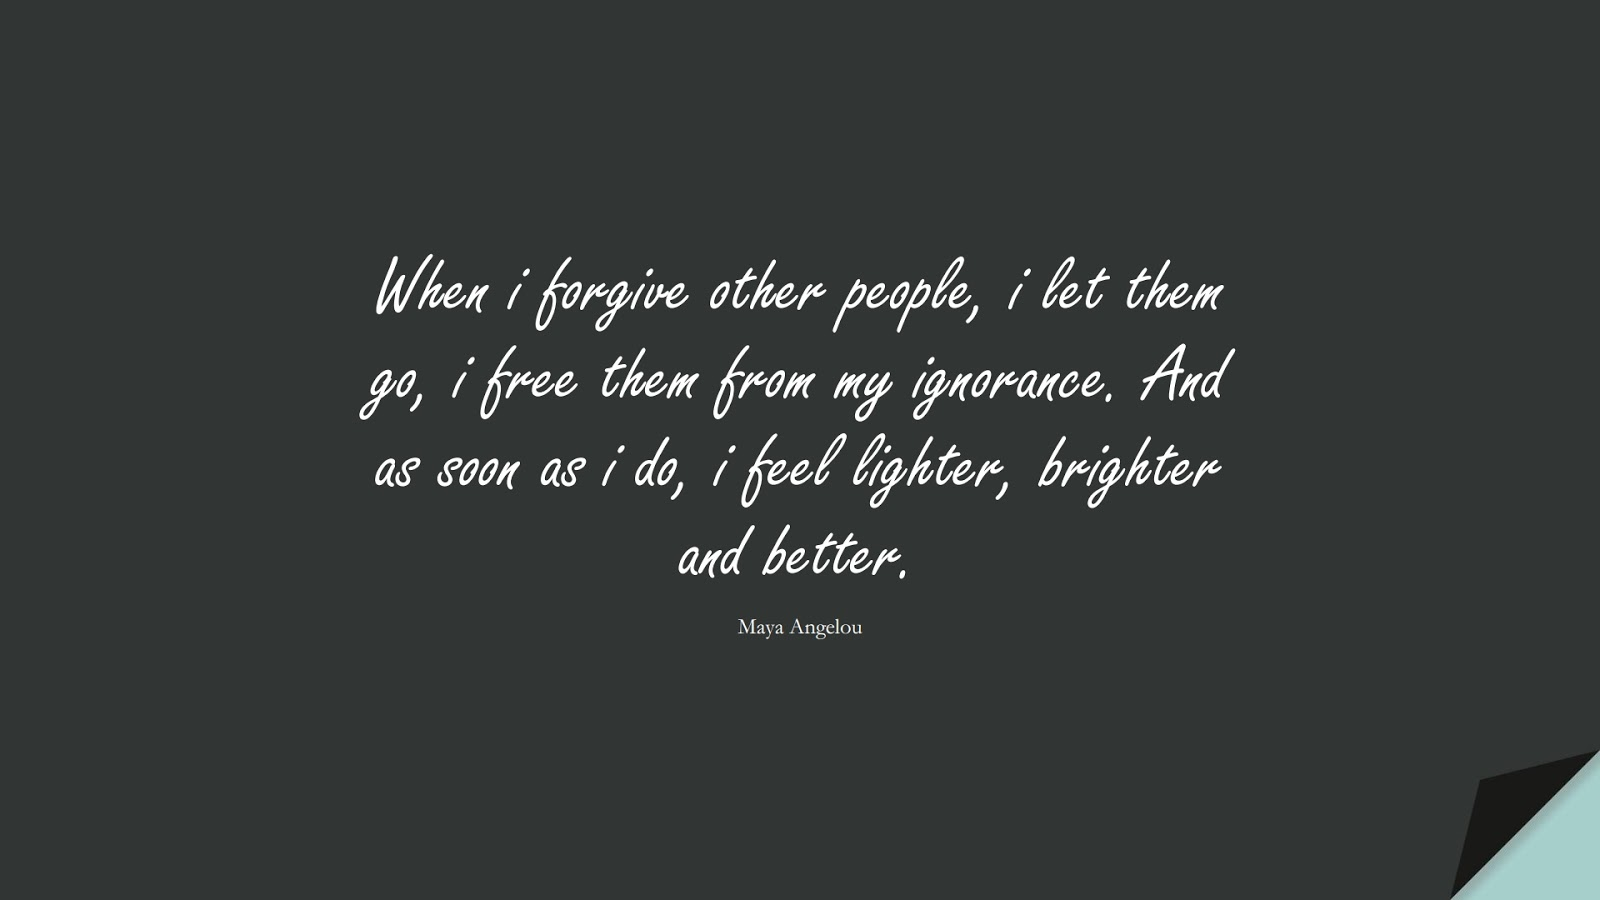 When i forgive other people, i let them go, i free them from my ignorance. And as soon as i do, i feel lighter, brighter and better. (Maya Angelou);  #MayaAngelouQuotes